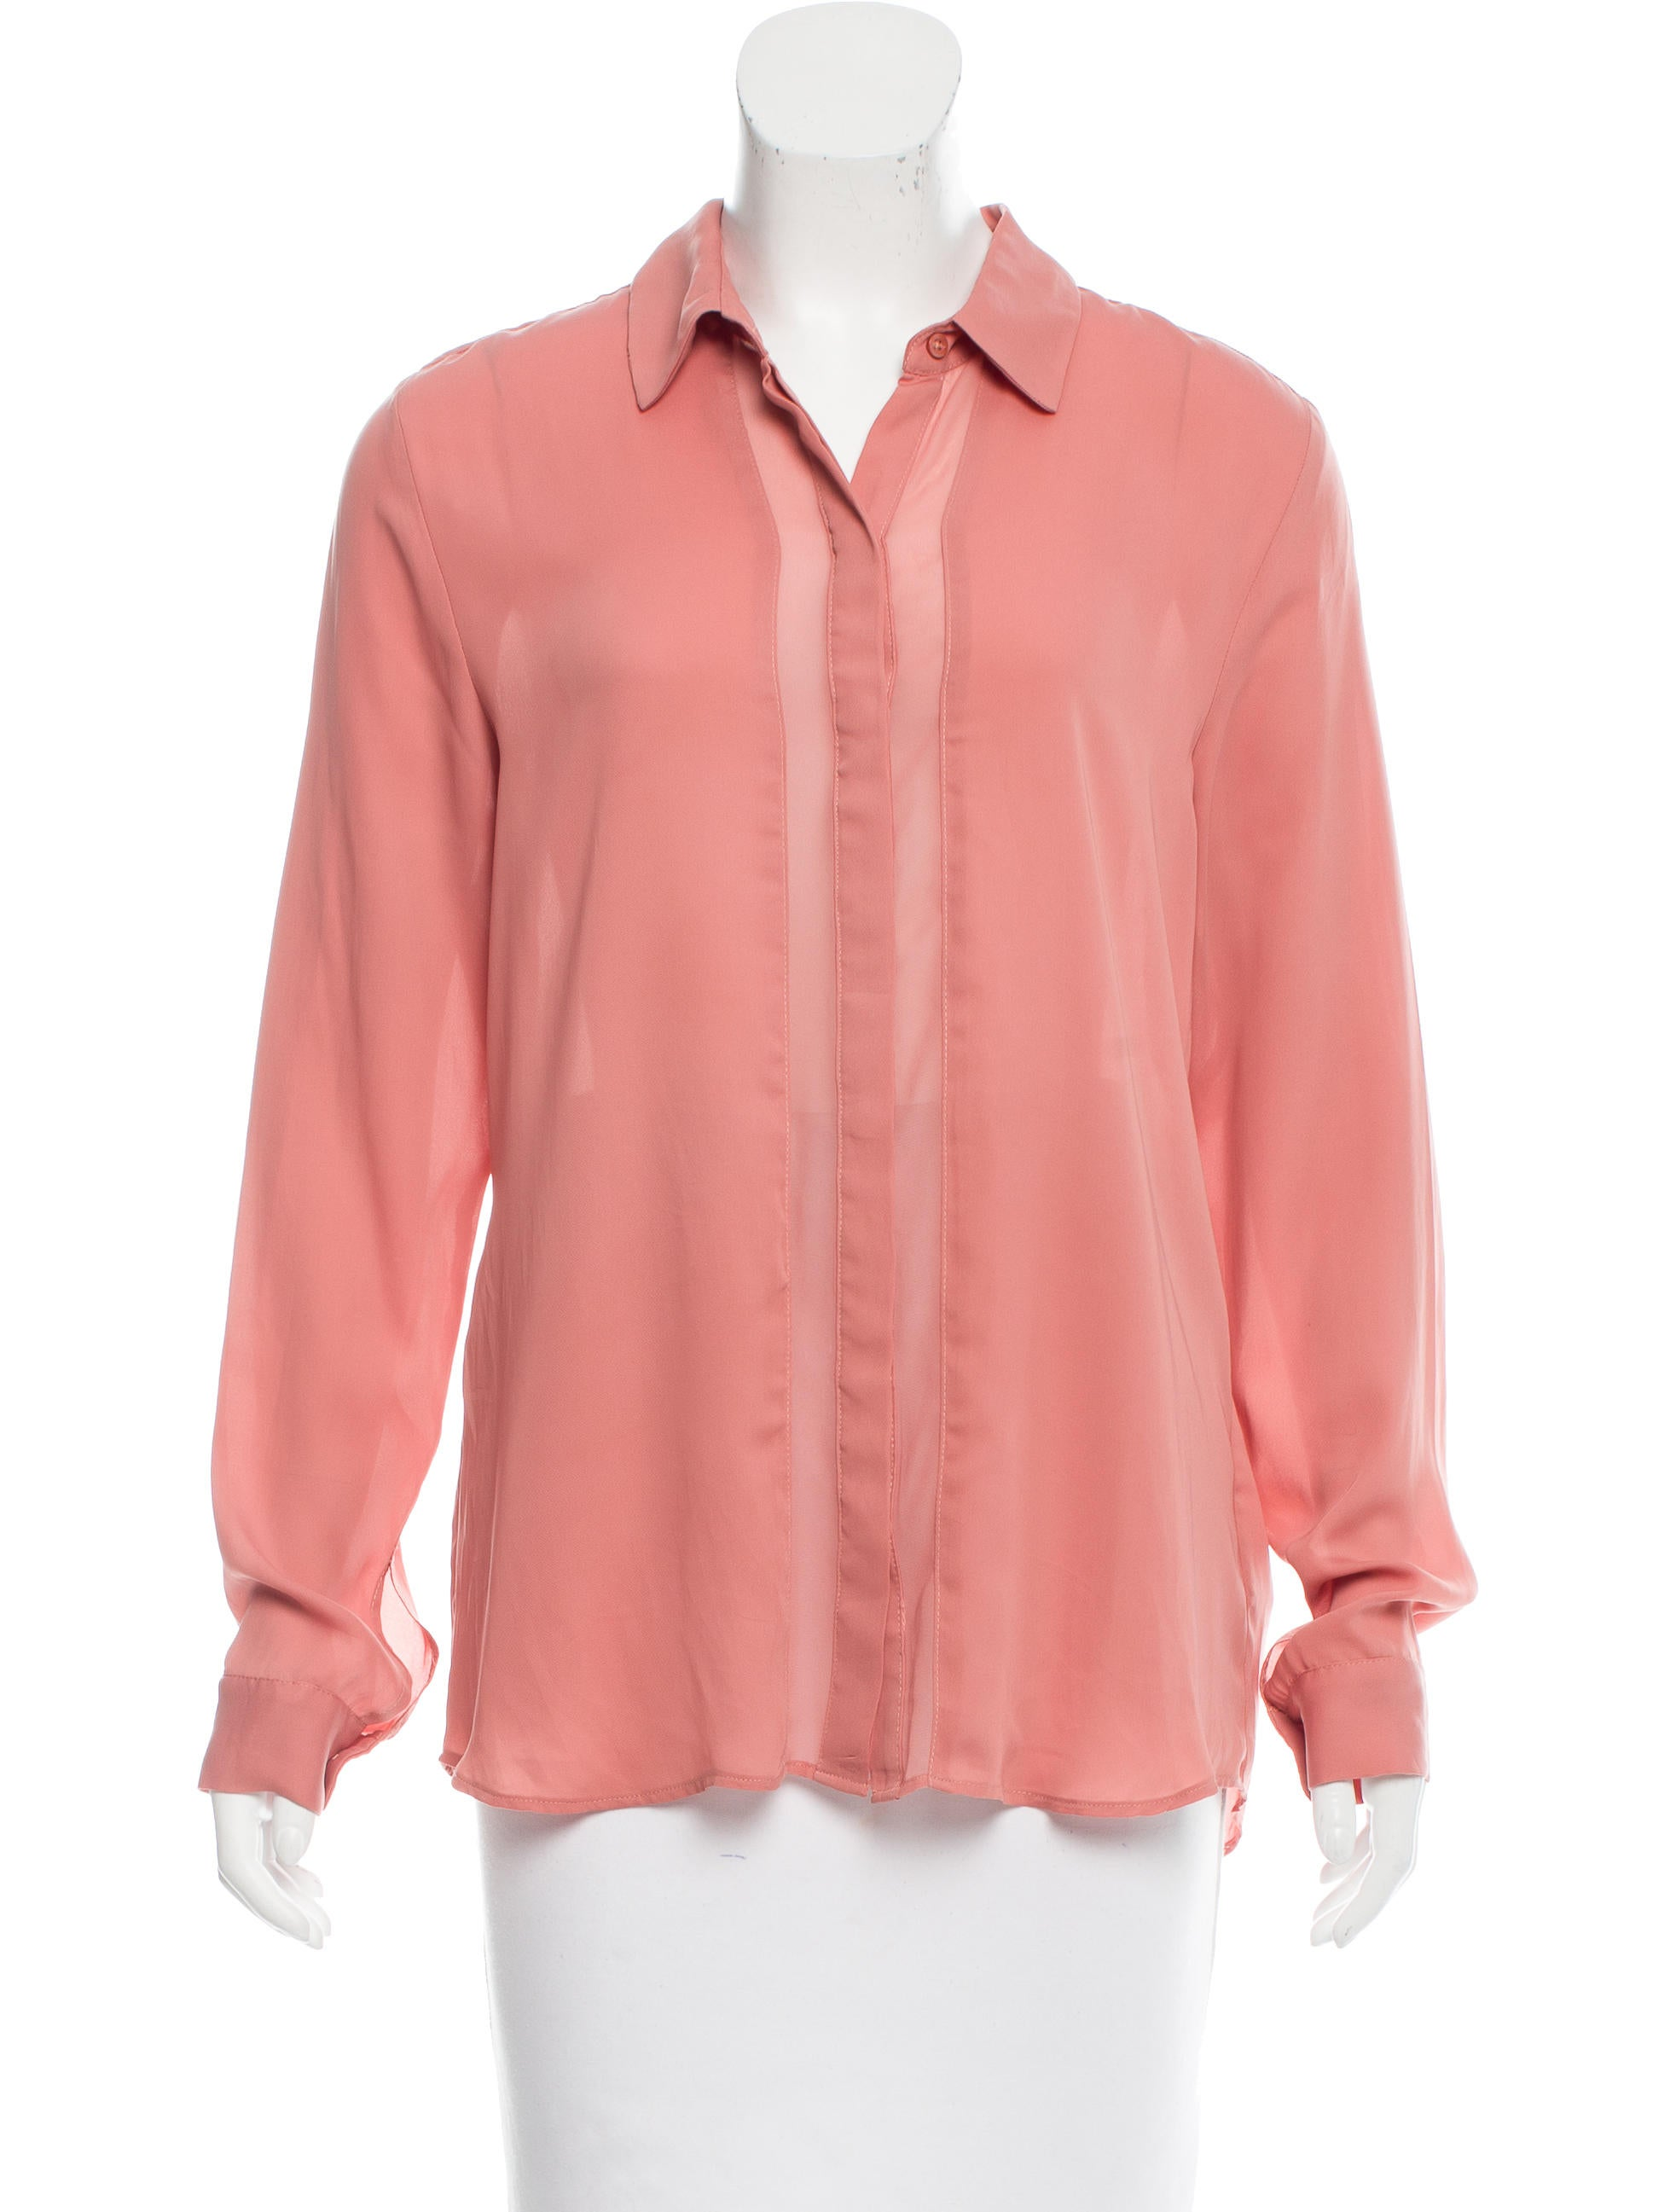 Robert Rodriguez Chiffon Paneled Button Up Blouse Clothing Wrr29692 The Realreal